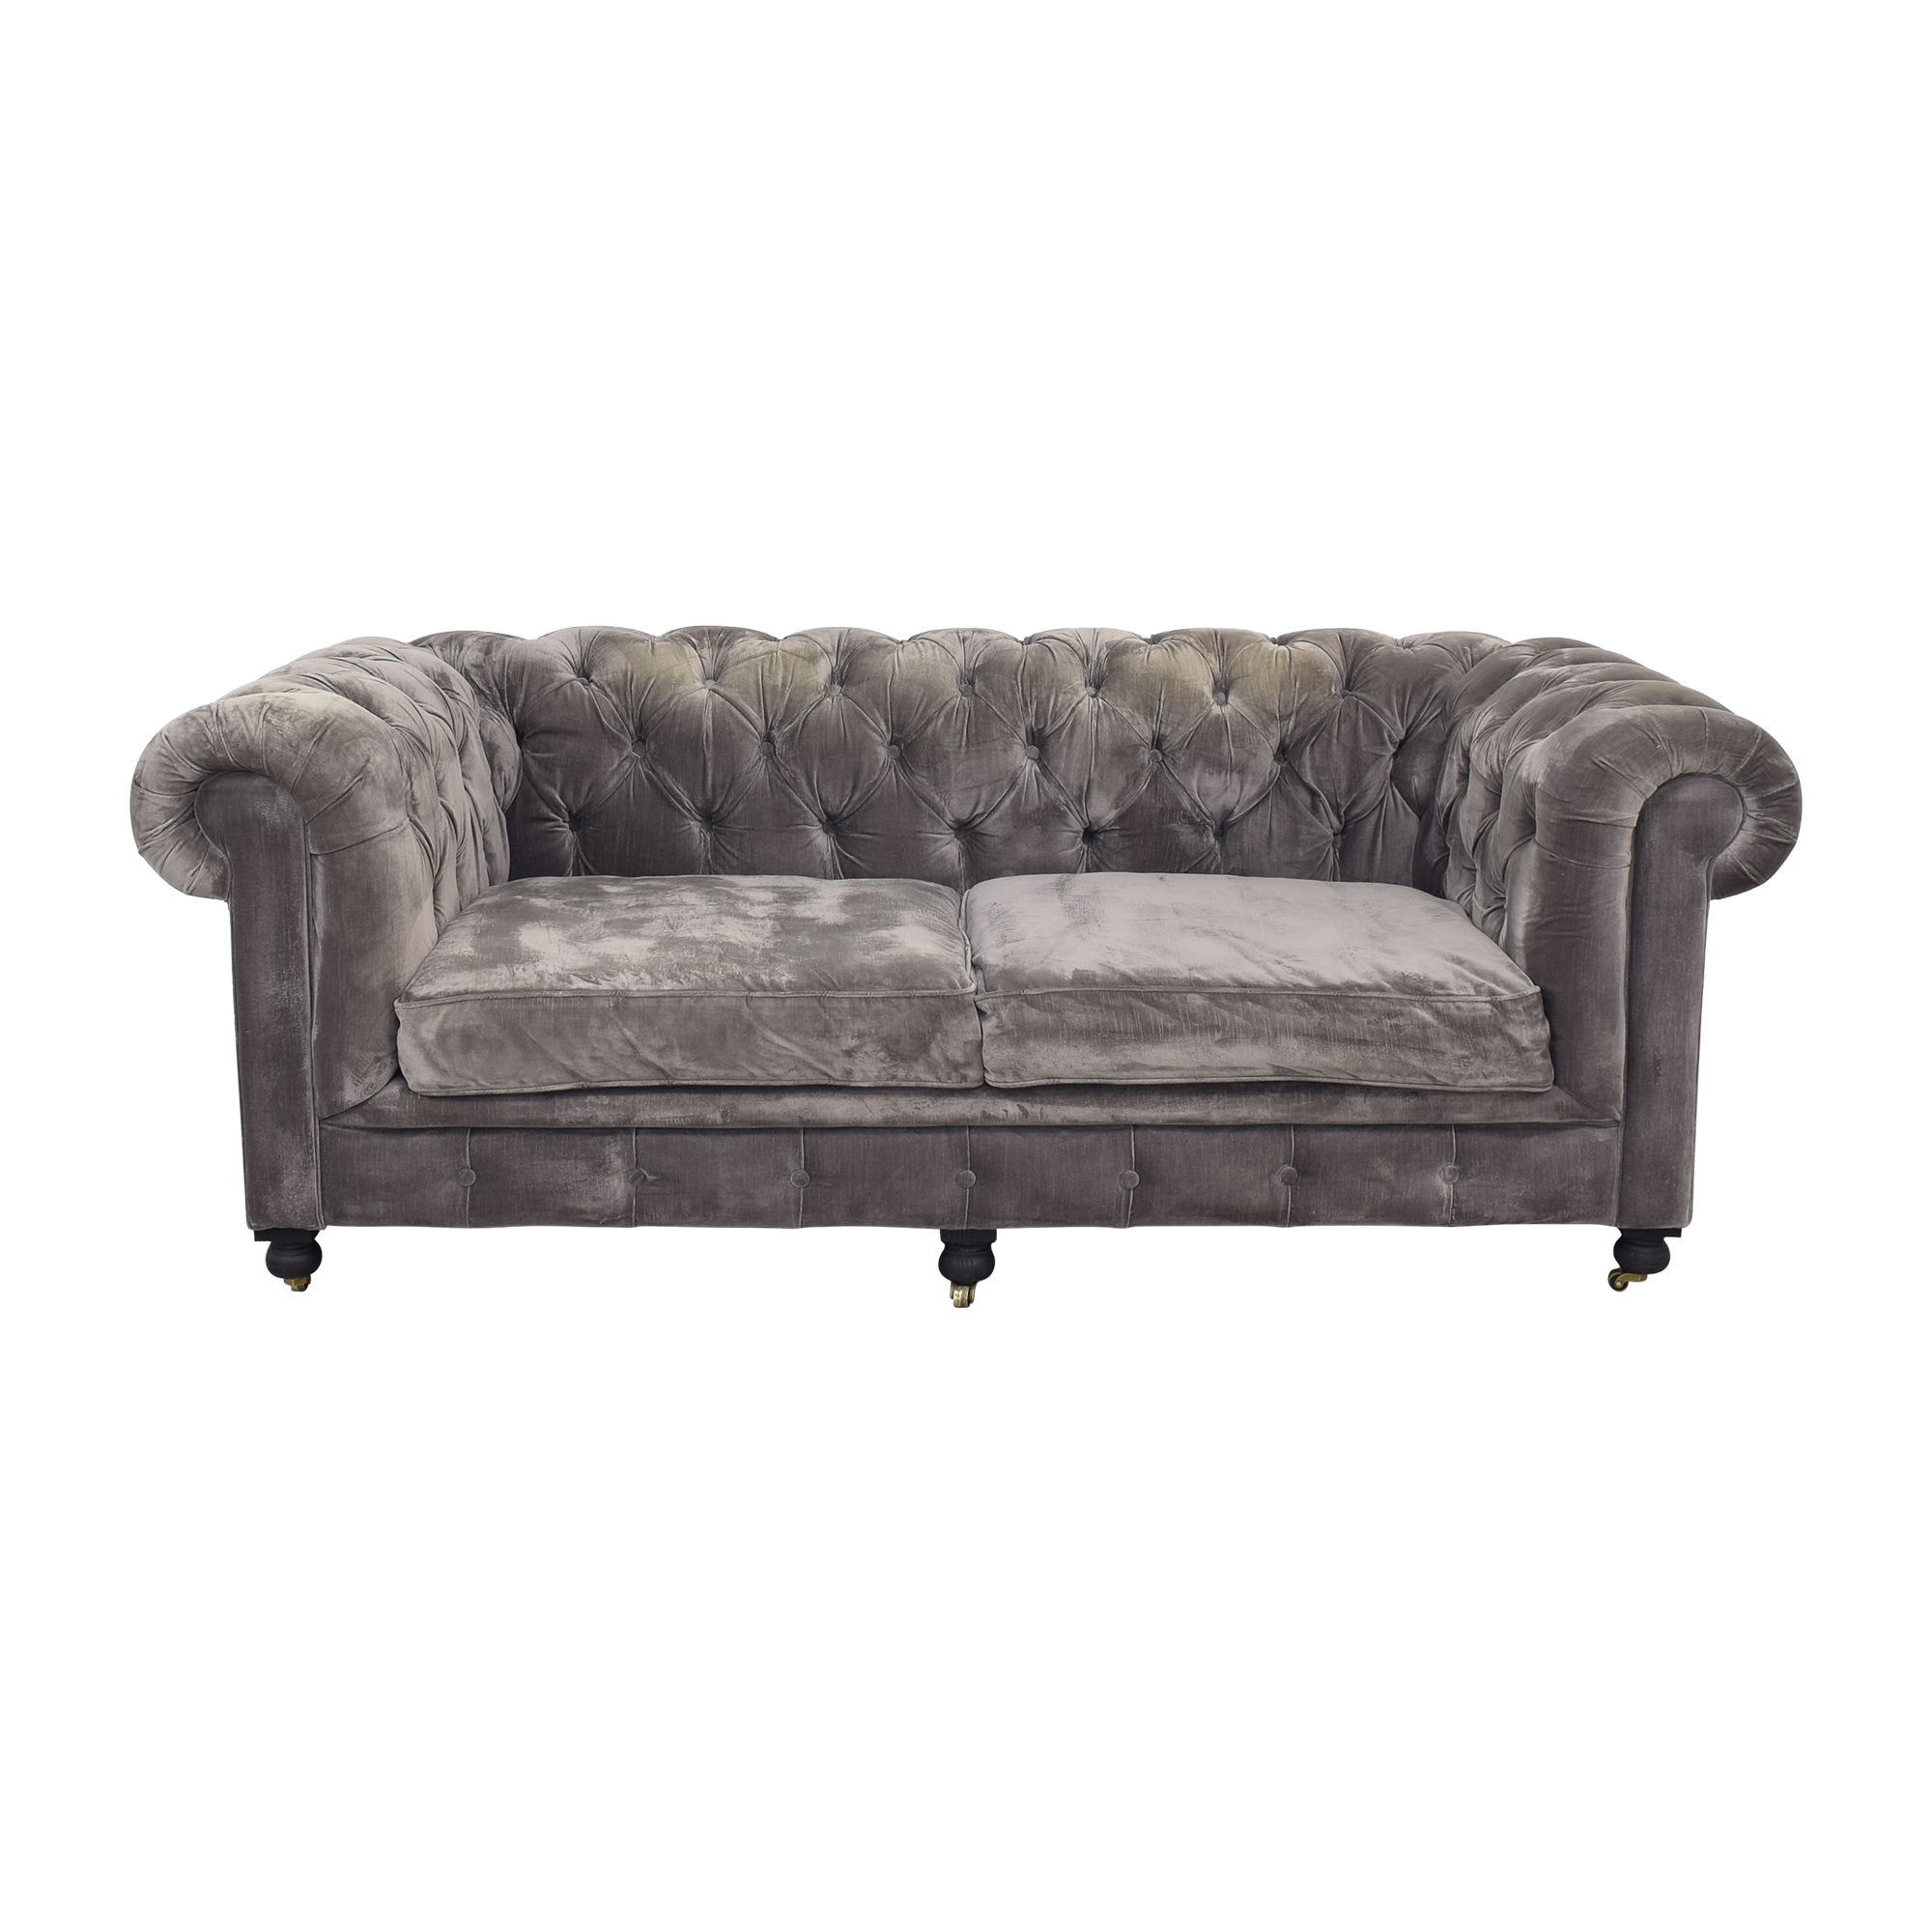 Restoration Hardware Restoration Hardware Kensington Sofa second hand